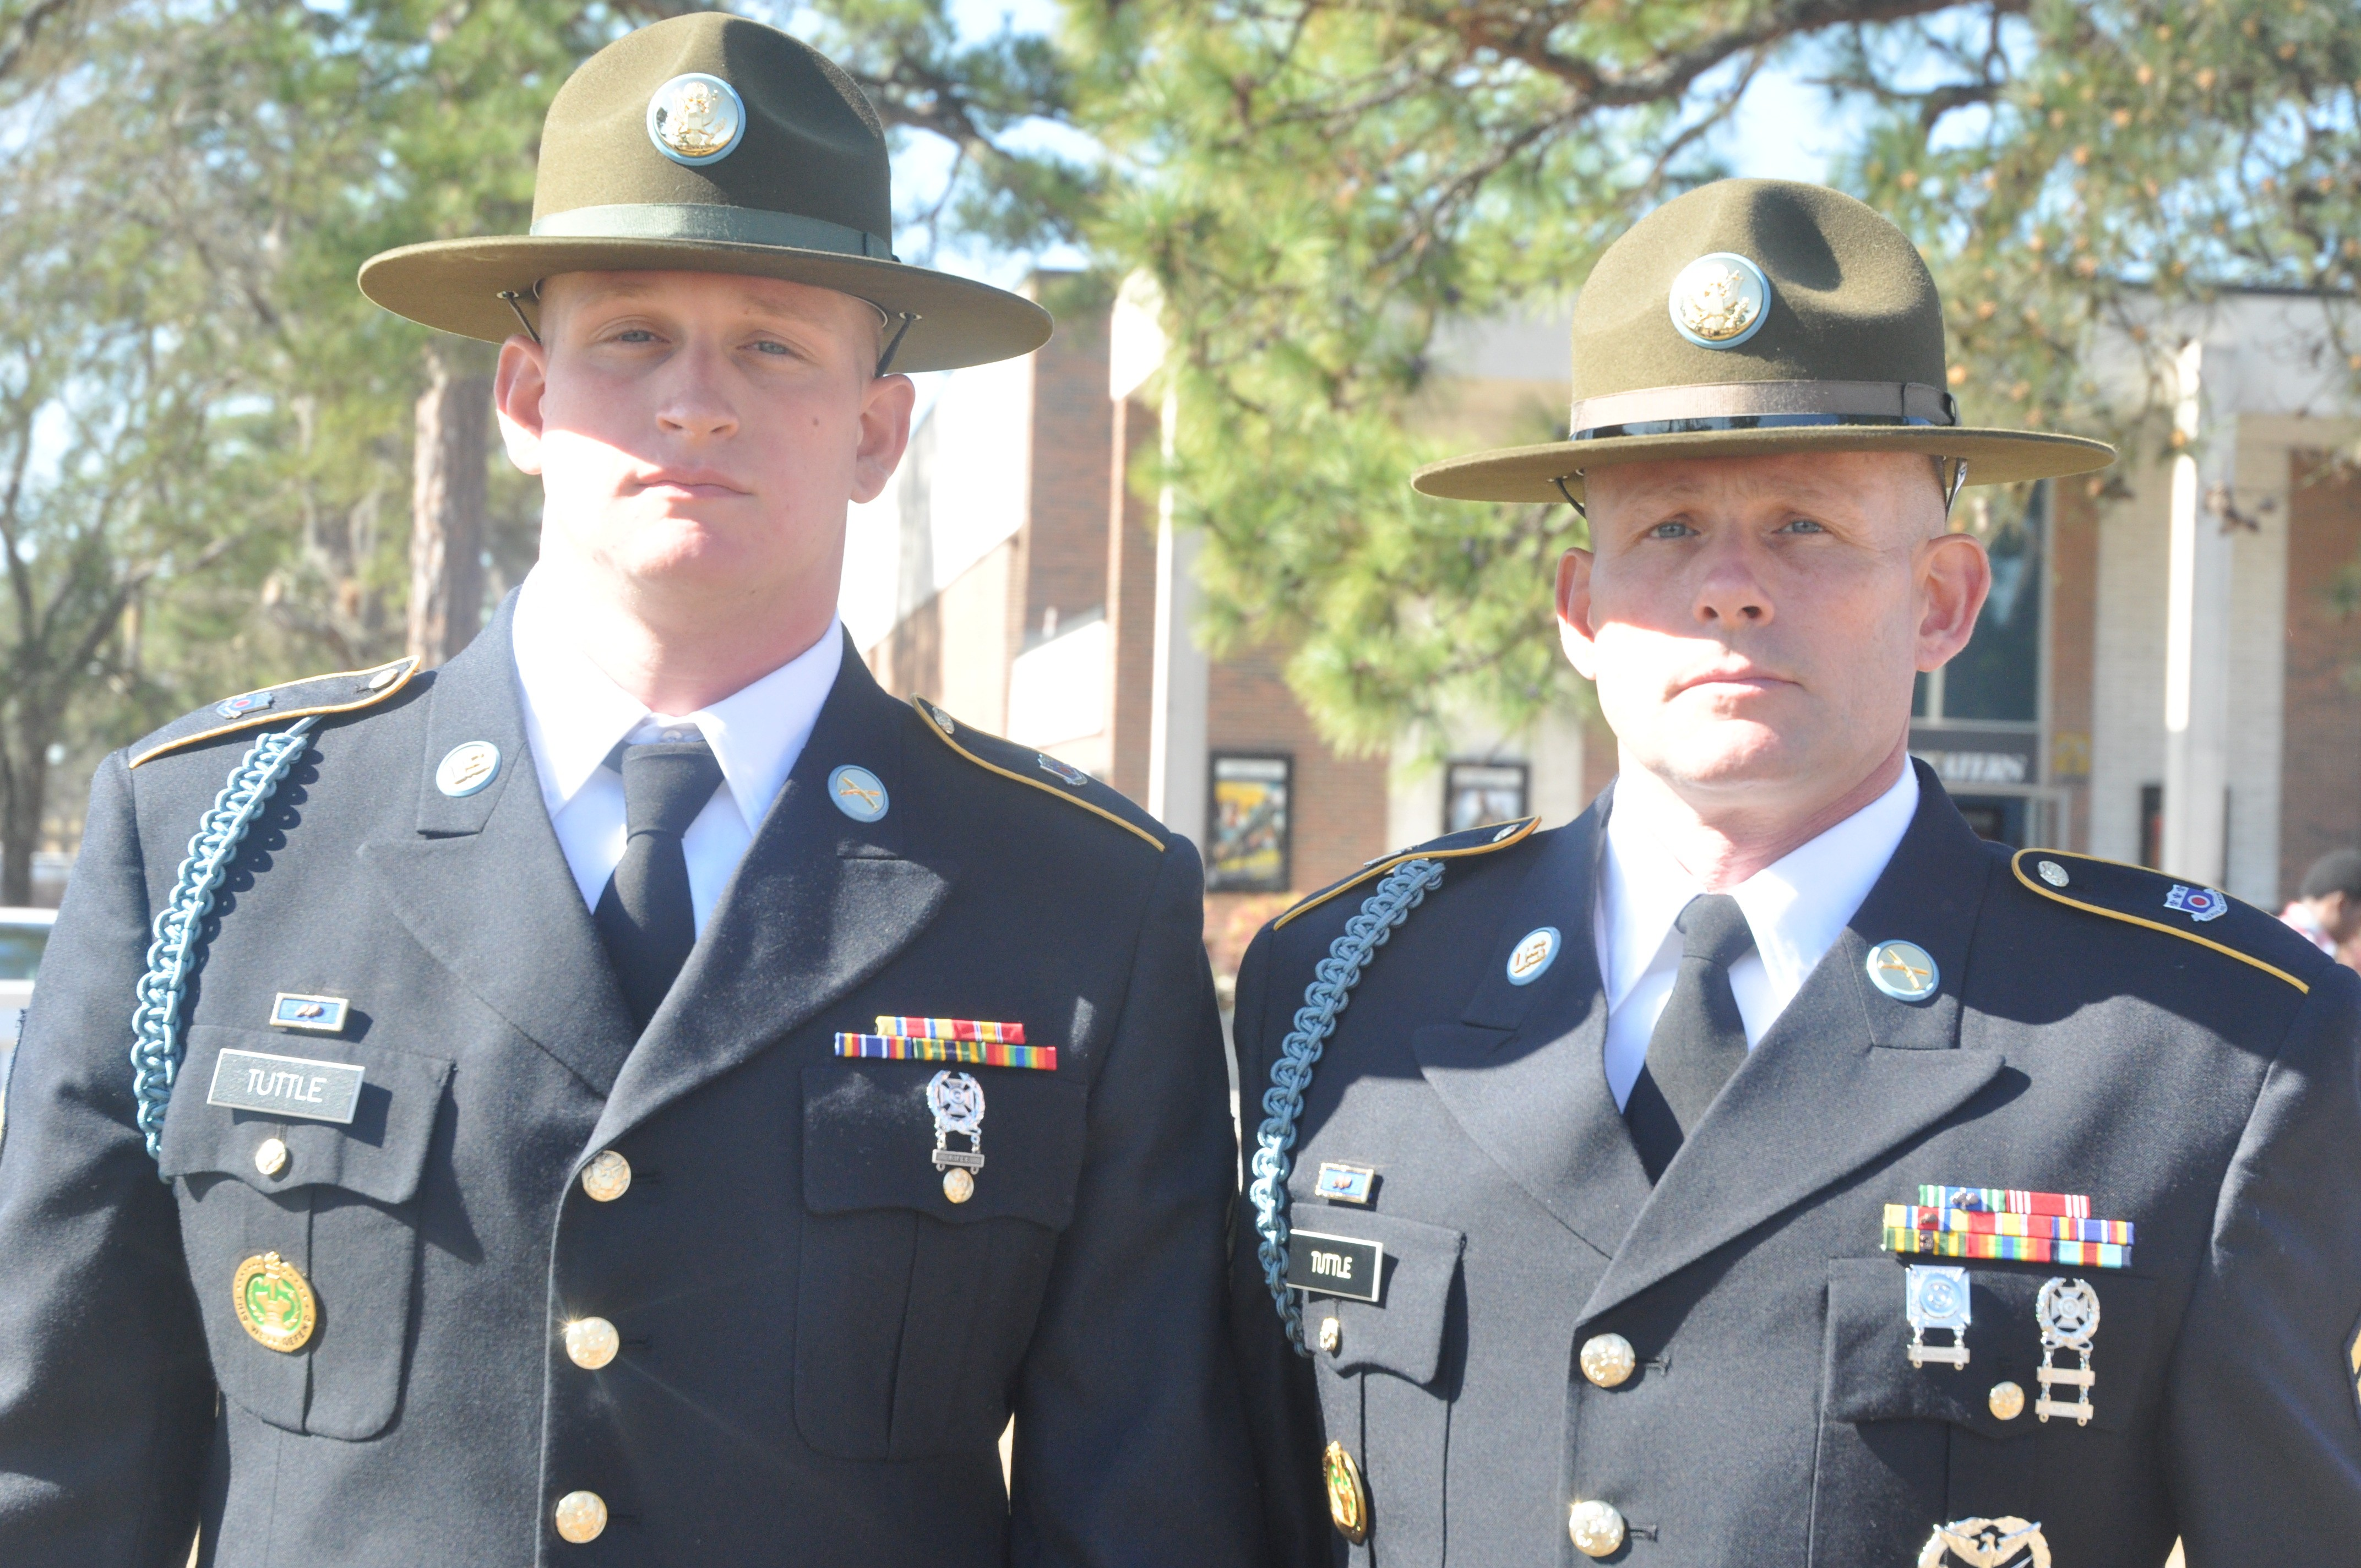 Inventing a family tradition | Article | The United States Army